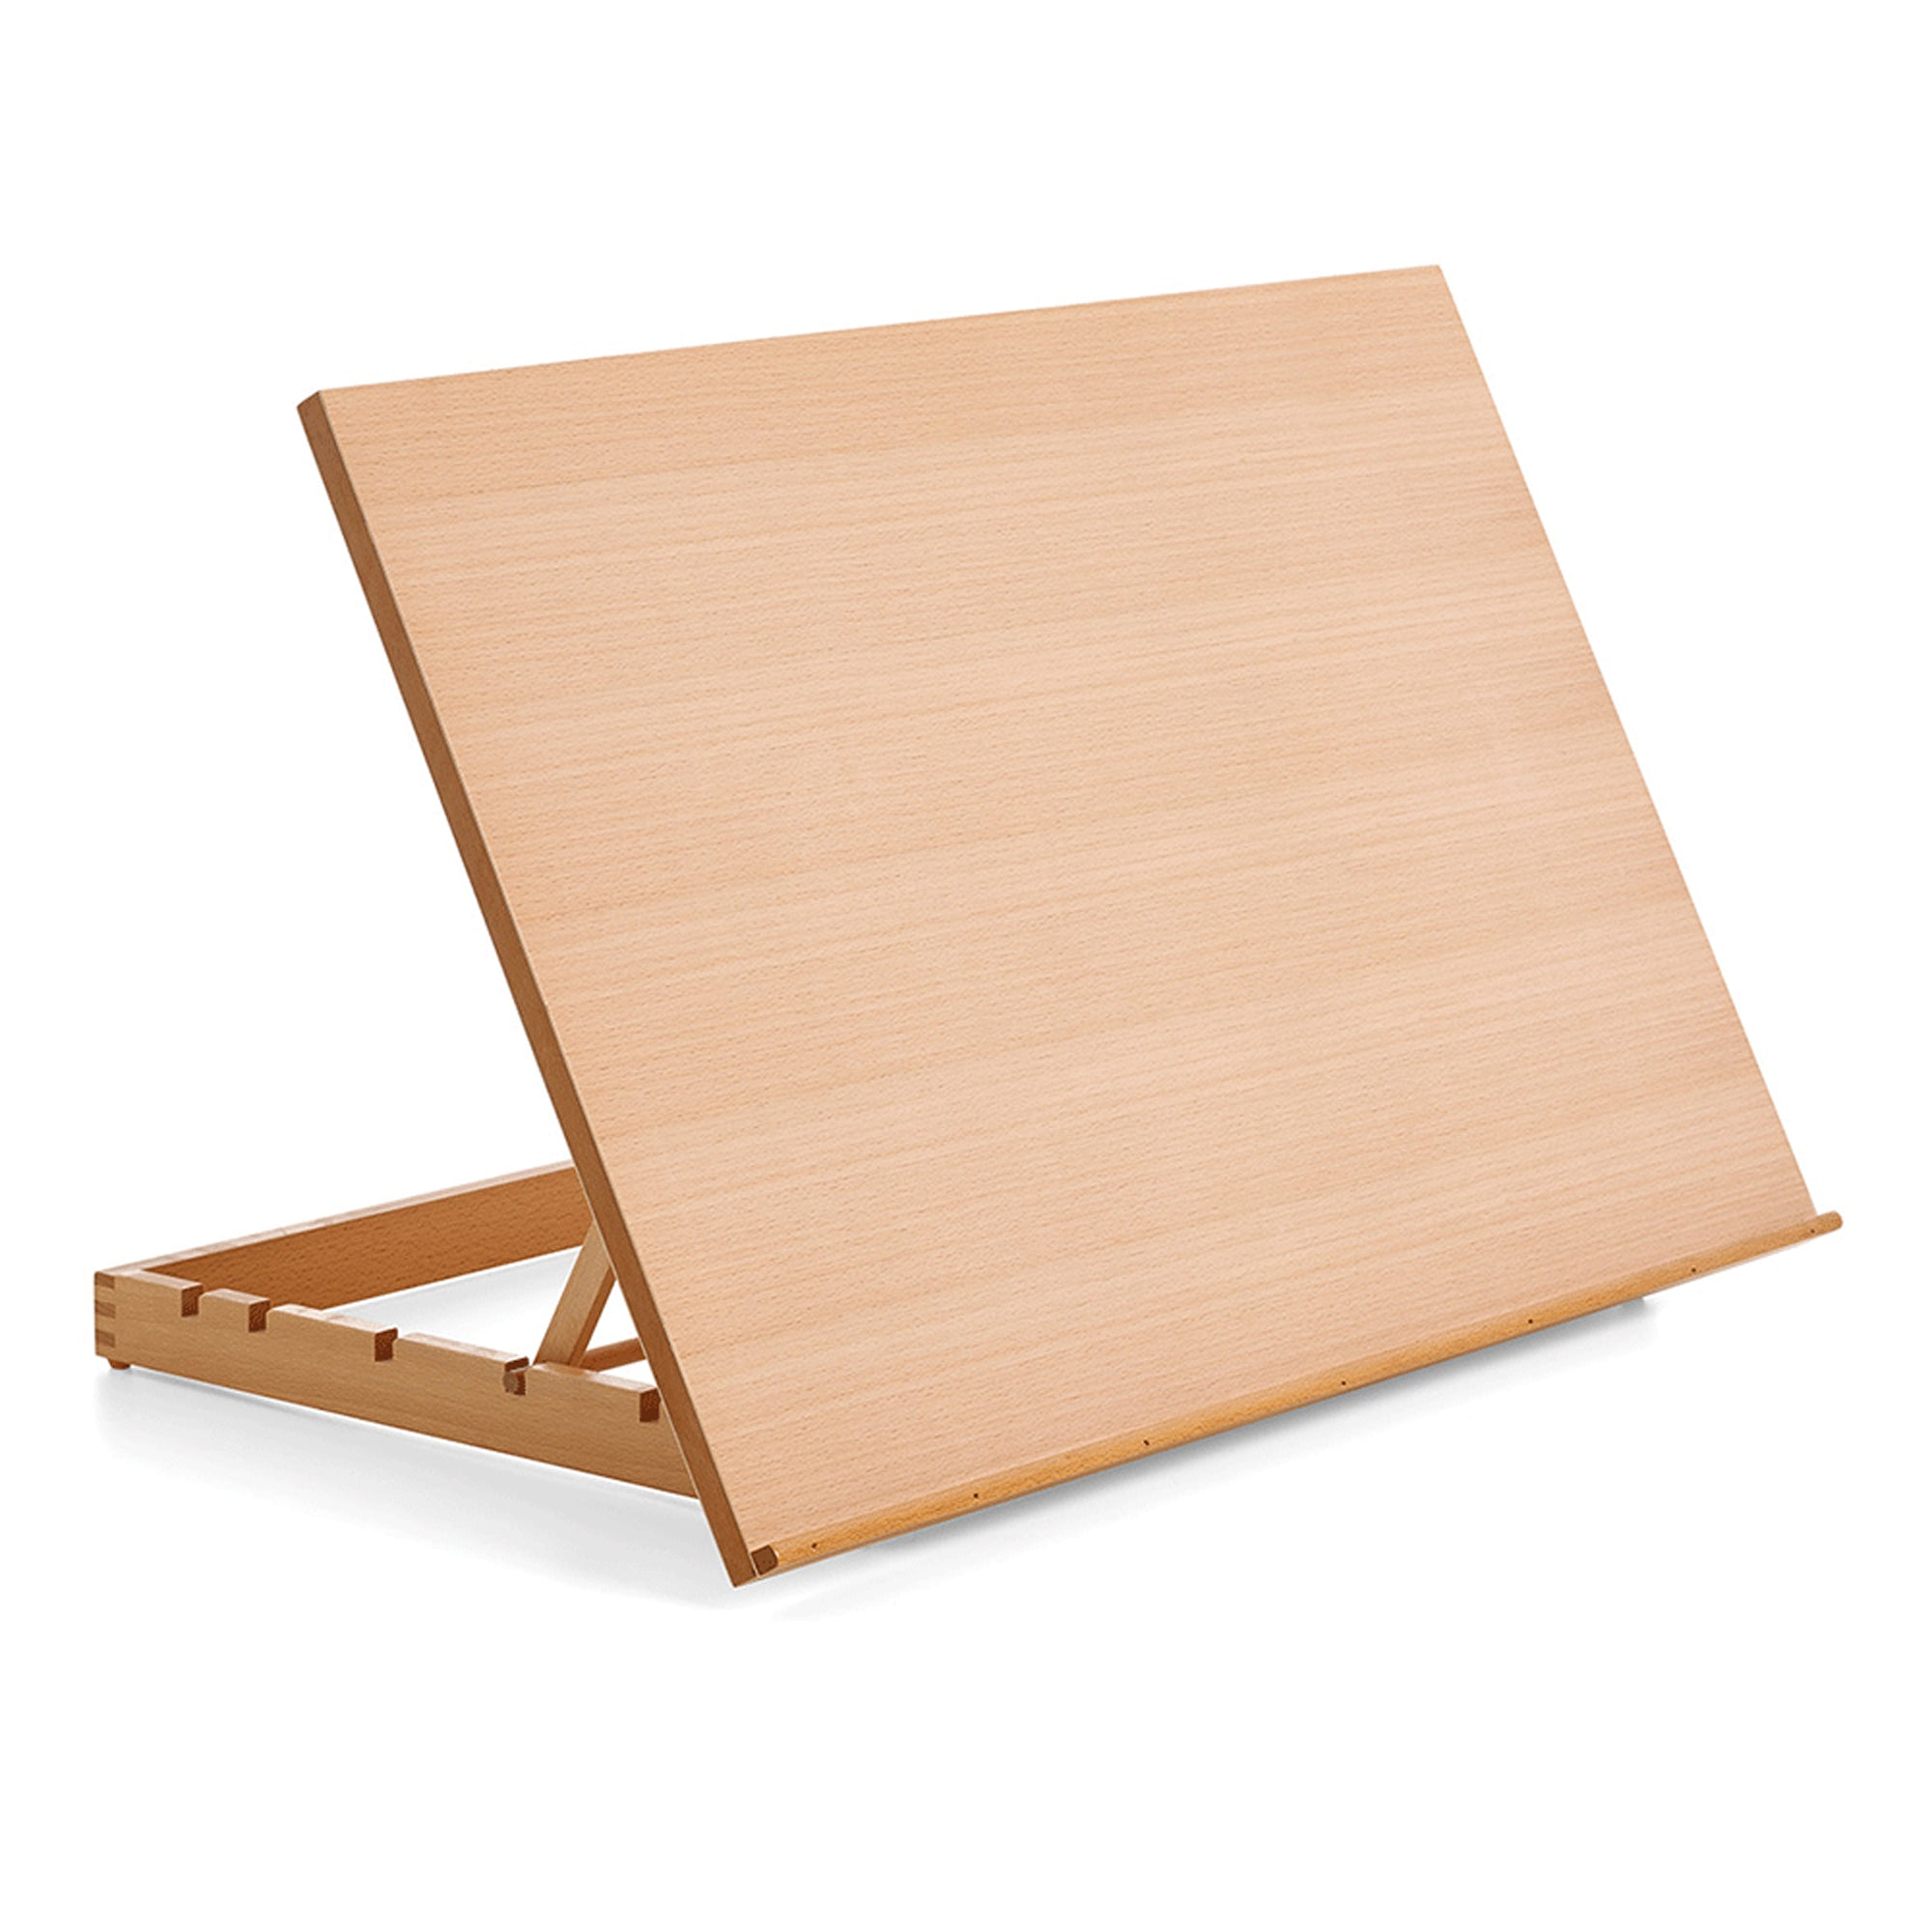 Danube A2 Art /& Craft Table Easel